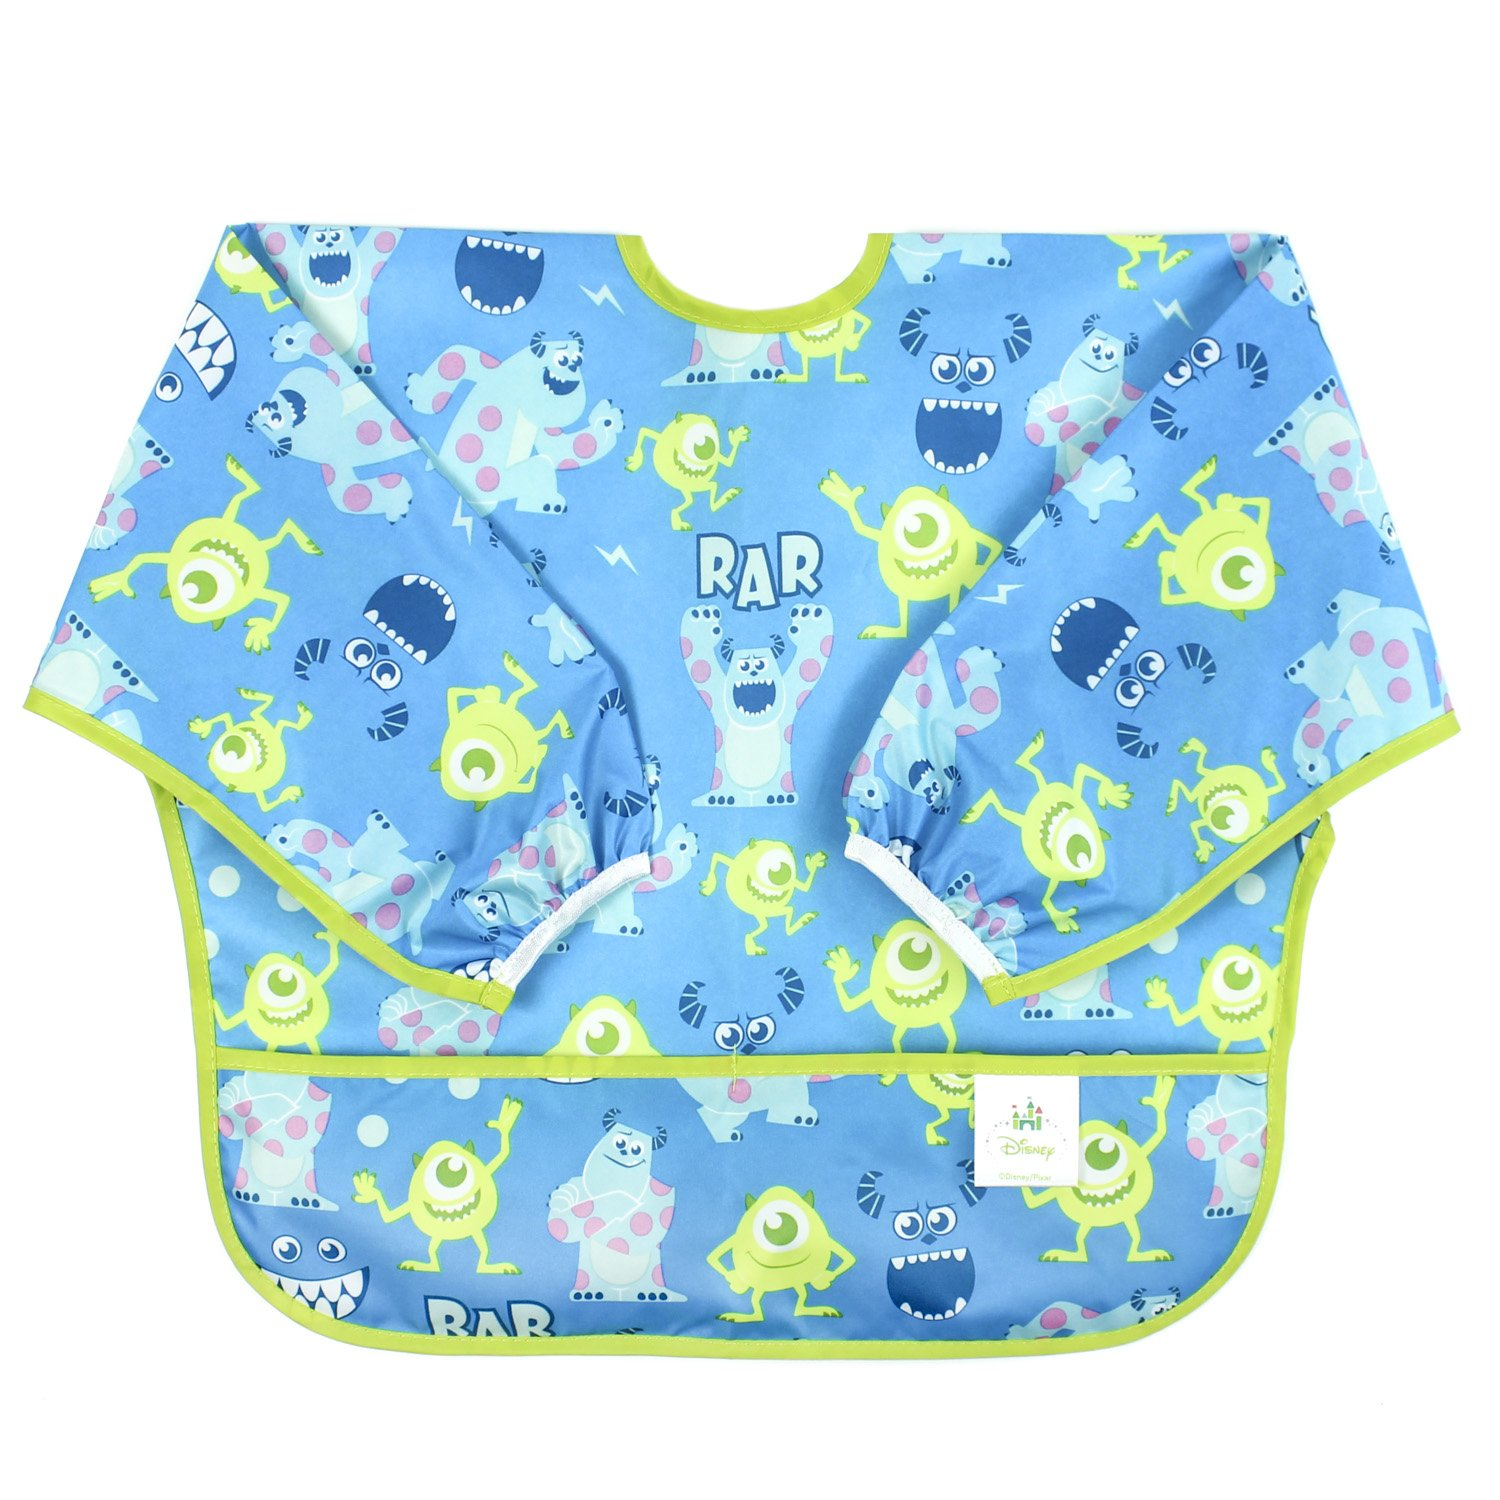 Bumkins Disney Baby Waterproof Sleeved Bib, Winnie The Pooh Balloon (6-24 Months) SU-DWP42